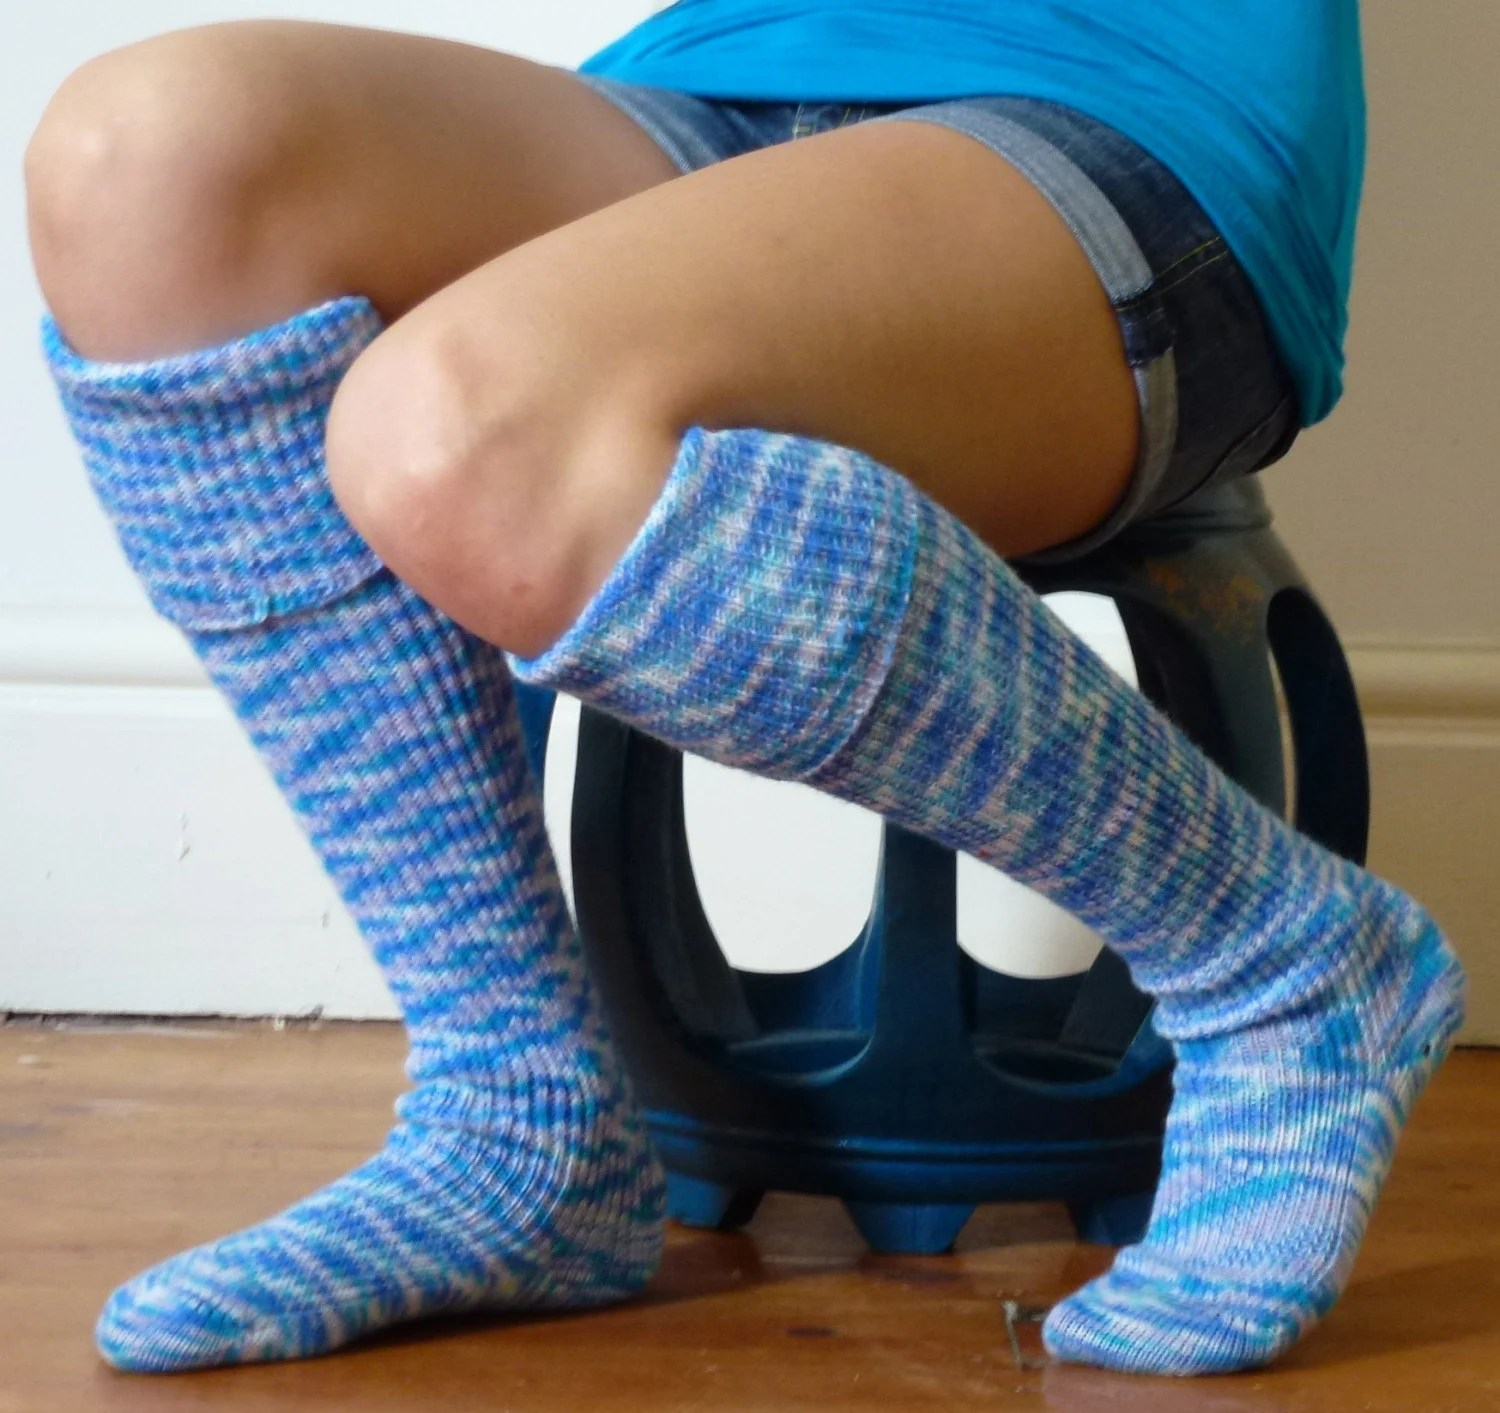 Knee high KNITTED SOCKS - turquoise, lavender and white  Over the knee hand made - footfetishsocks